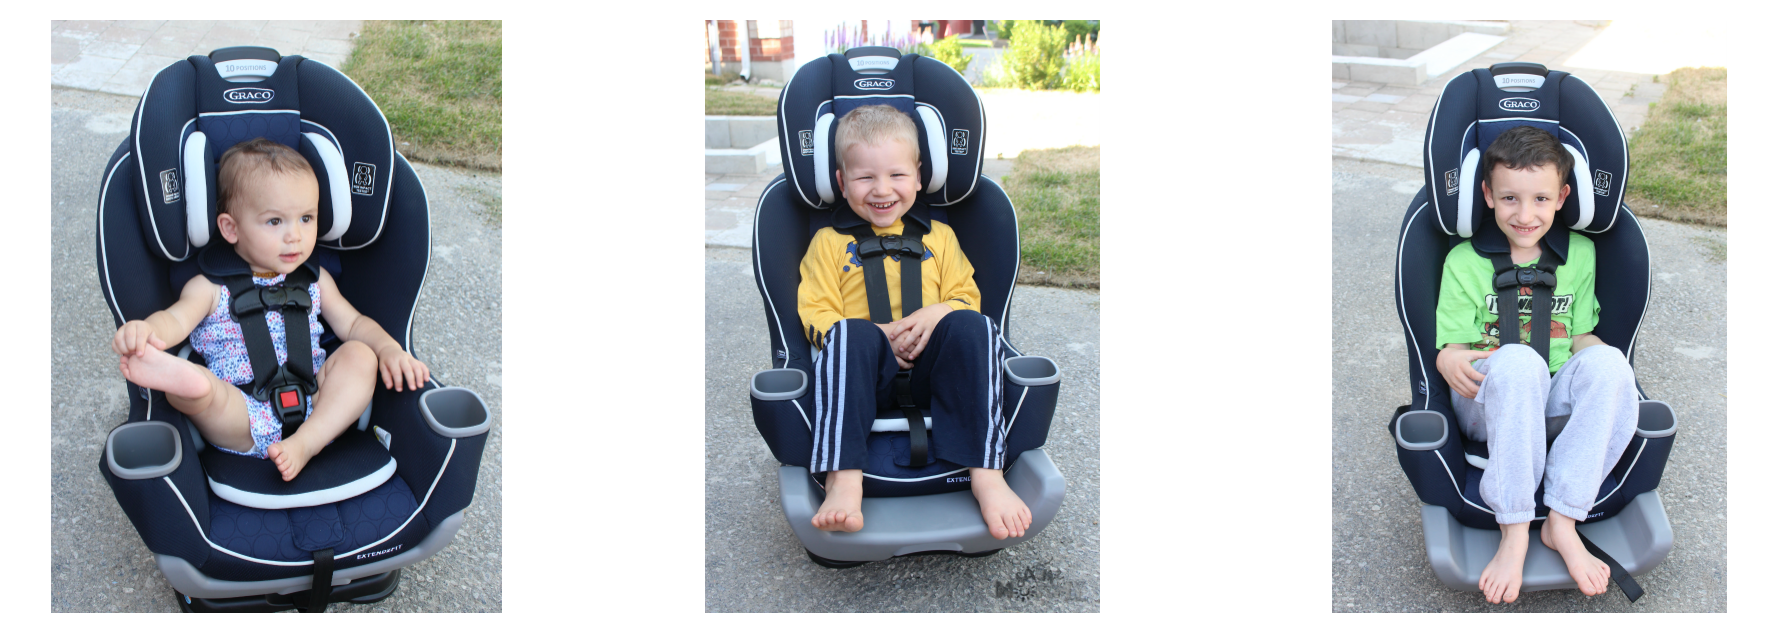 The Graco Extend2Fit Convertible Car Seat Fits All Three Of Them Comfortably And Takes A Lot Guesswork Out Complicated Installations